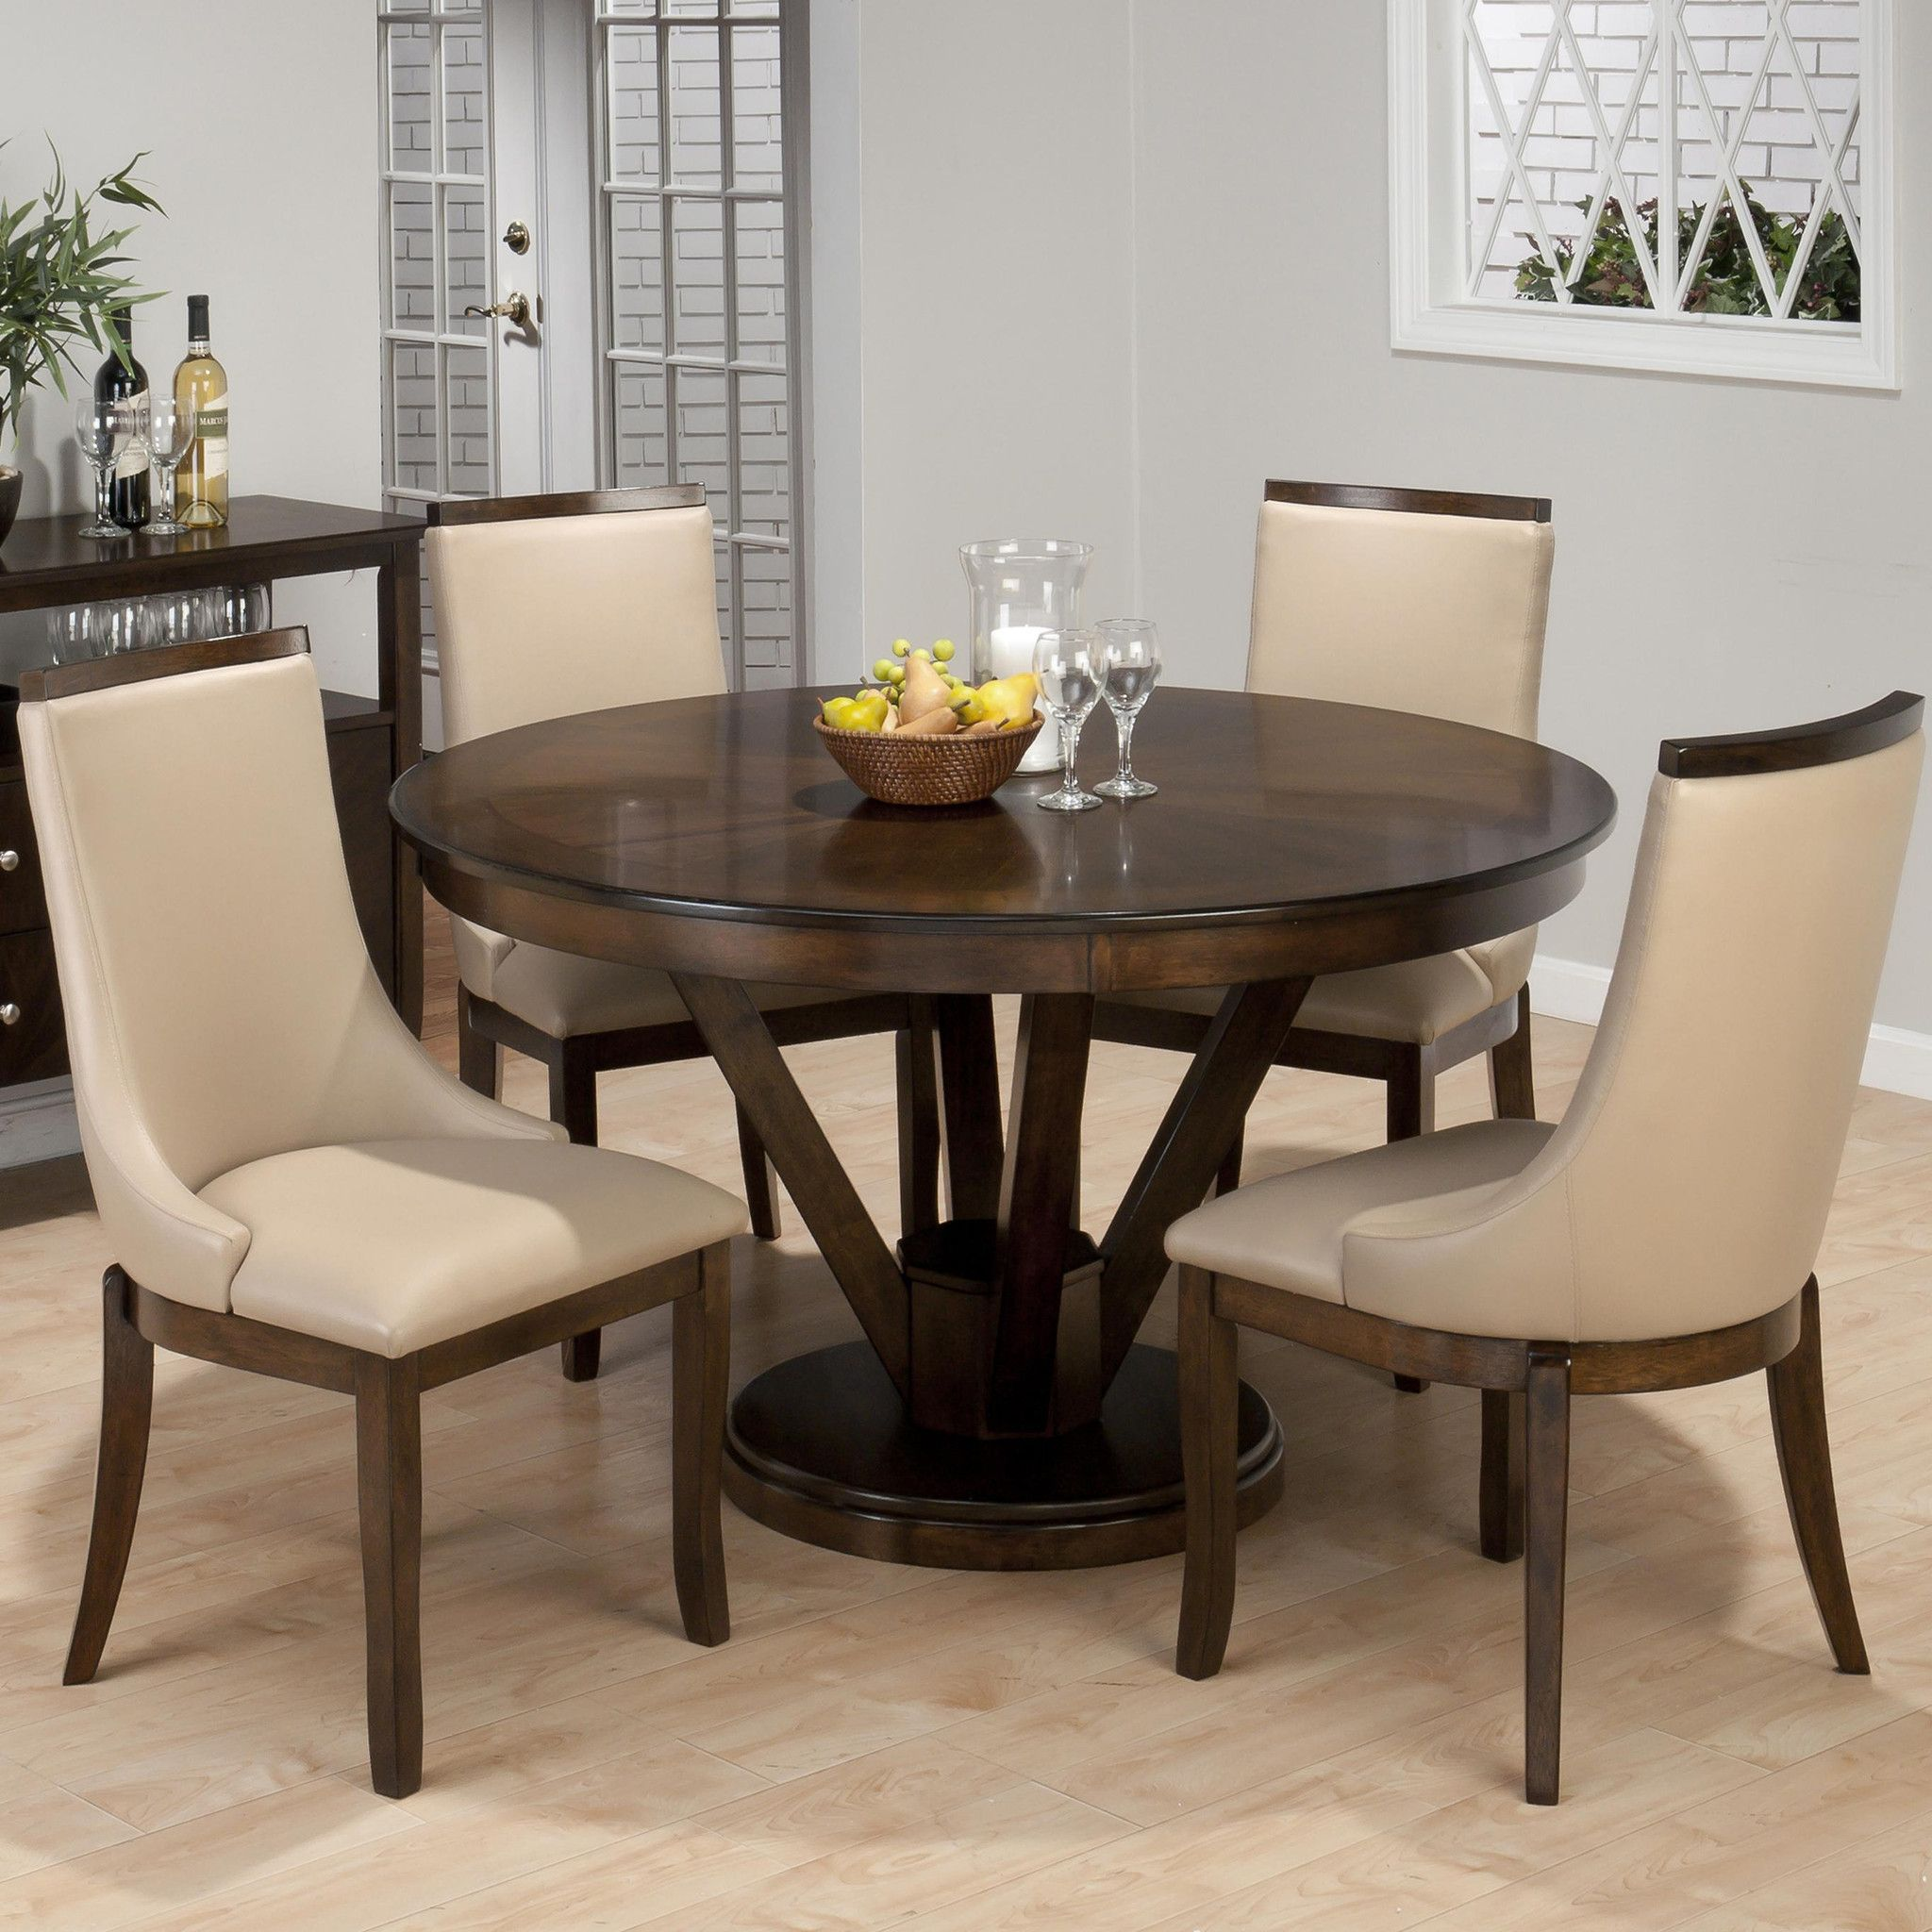 webber walnut casual kitchen dining set with four winged chairs adams furniture dining room. Black Bedroom Furniture Sets. Home Design Ideas